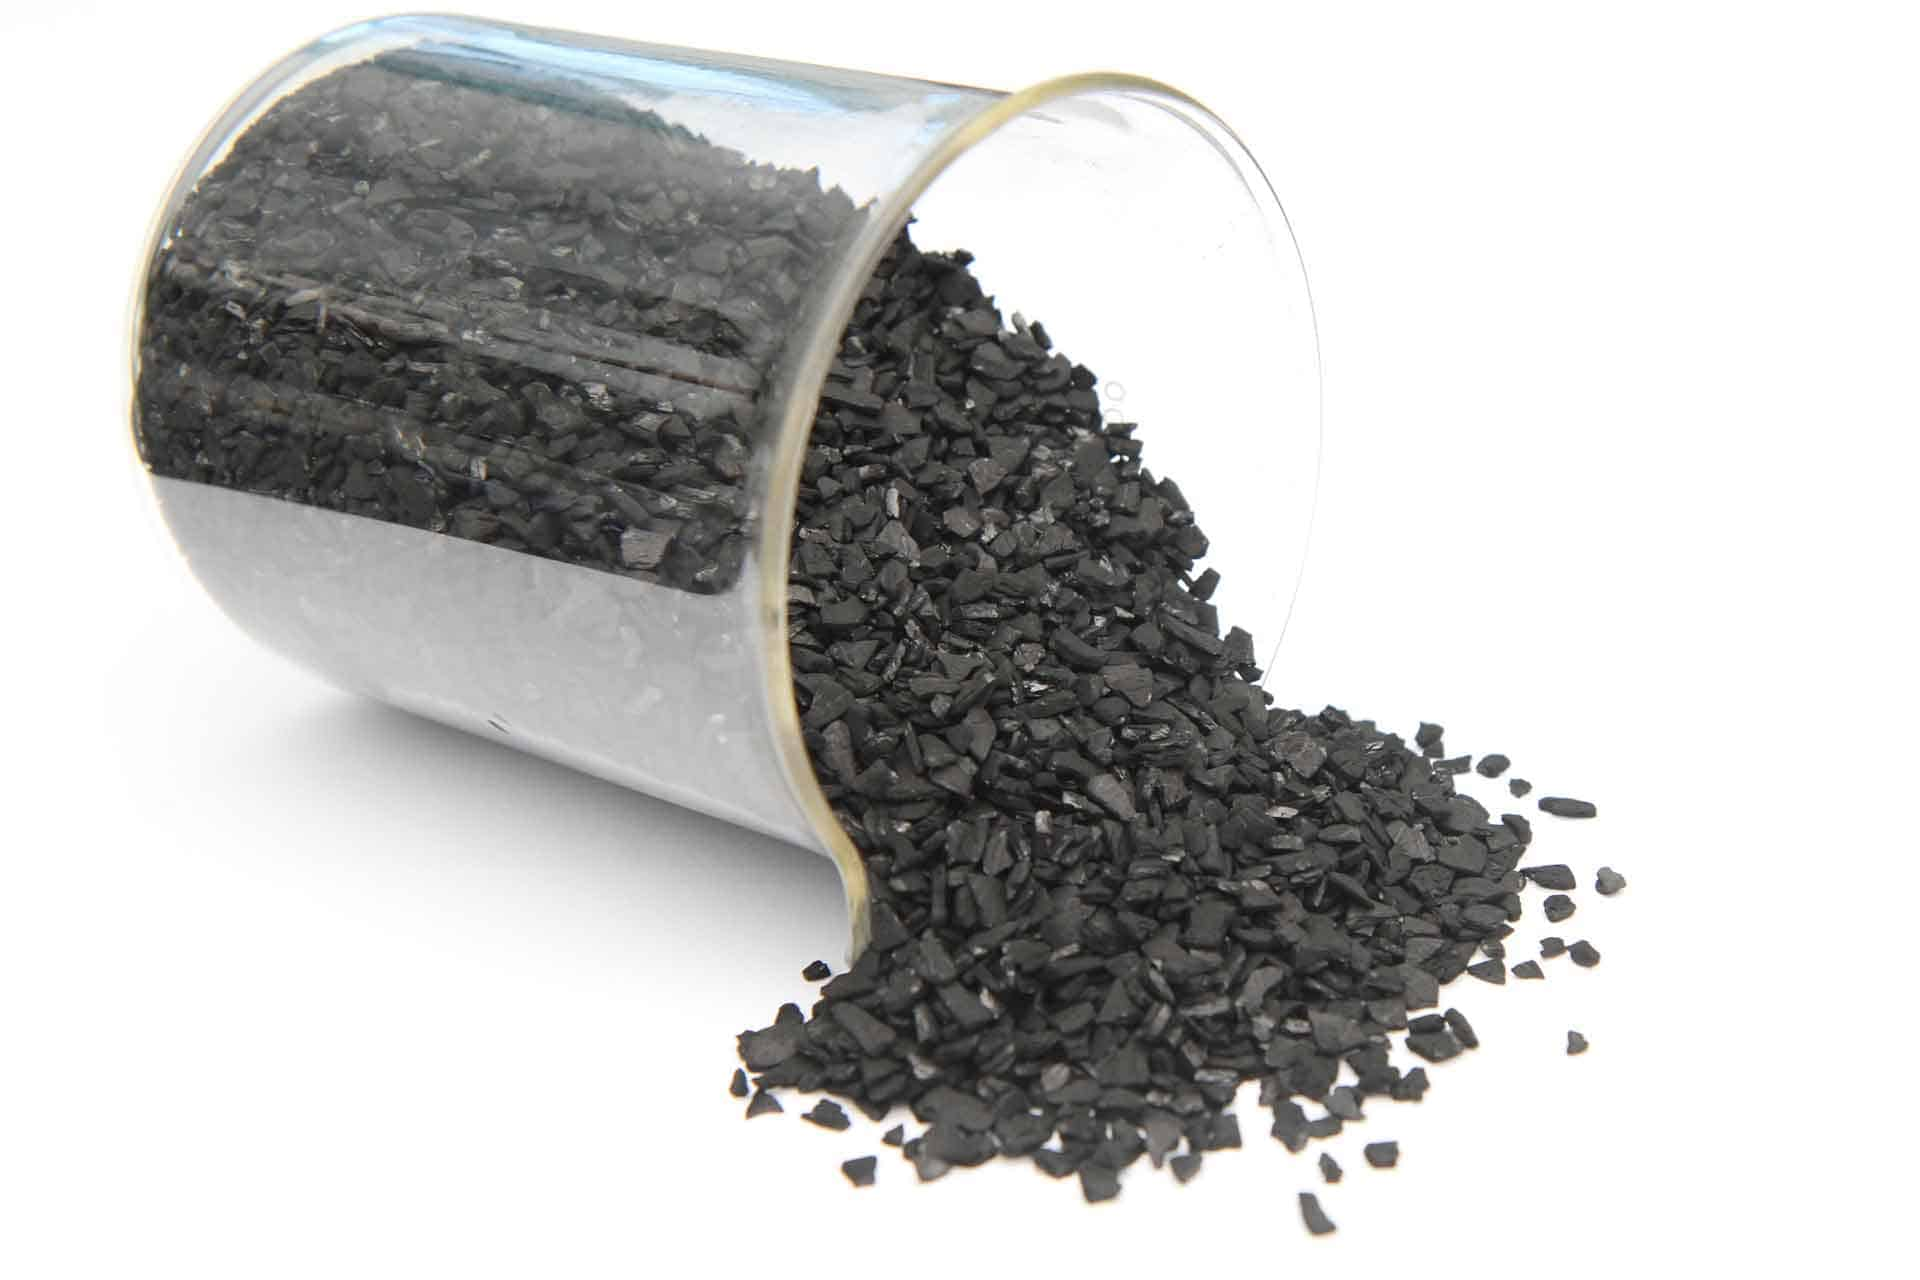 Global Activated Carbon Market Size 2020-2025, Price Analysis, Trends, Share, Research, Report and Forecast